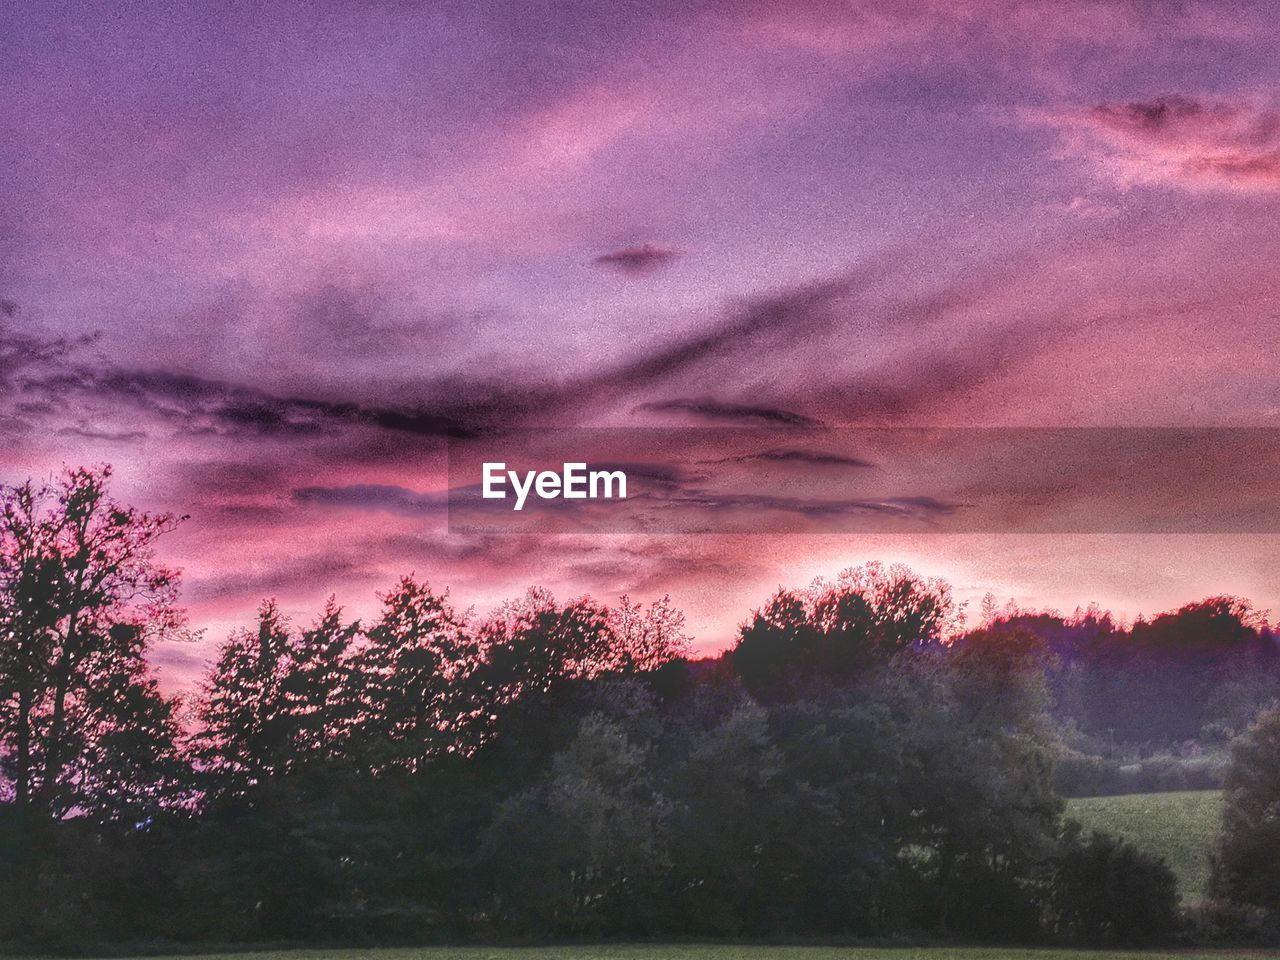 tree, sky, cloud - sky, plant, beauty in nature, sunset, scenics - nature, tranquility, tranquil scene, no people, nature, silhouette, pink color, idyllic, dramatic sky, non-urban scene, outdoors, growth, low angle view, purple, romantic sky